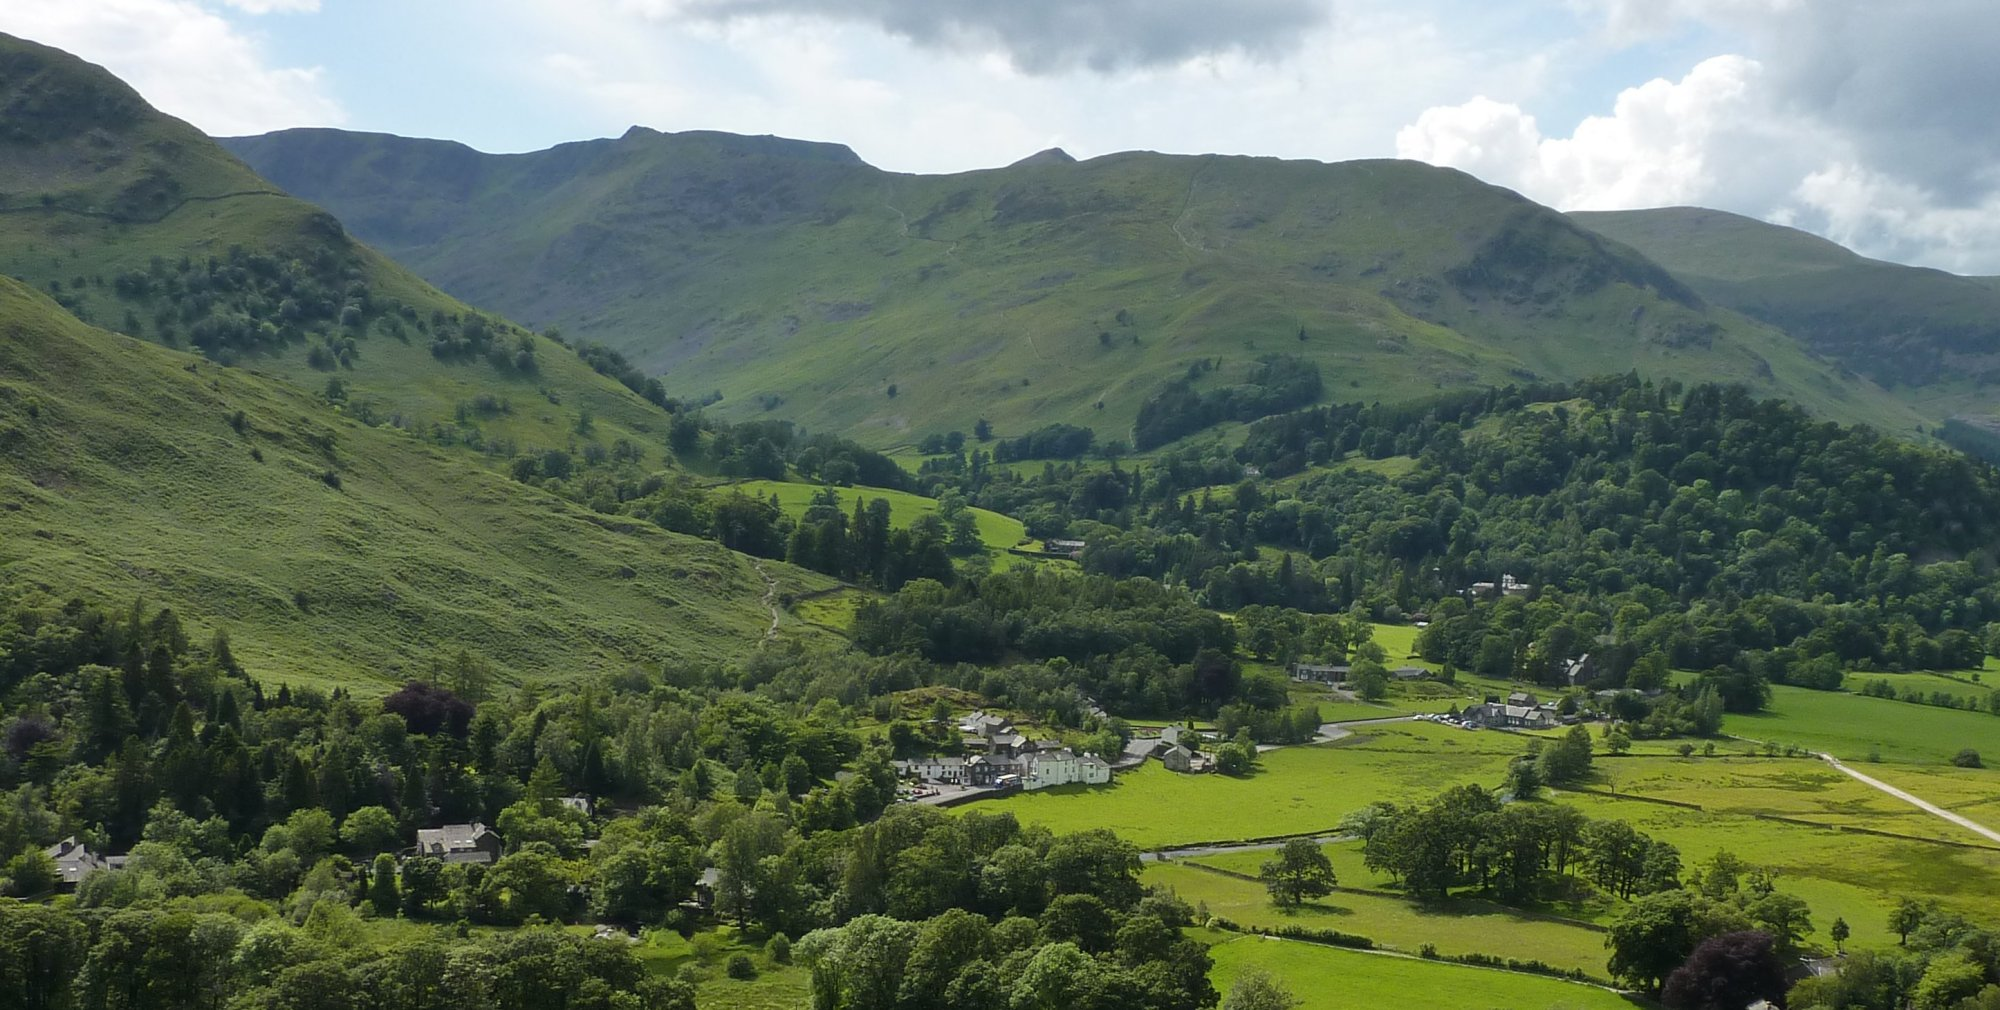 Patterdale from the descent from Boredale Hause